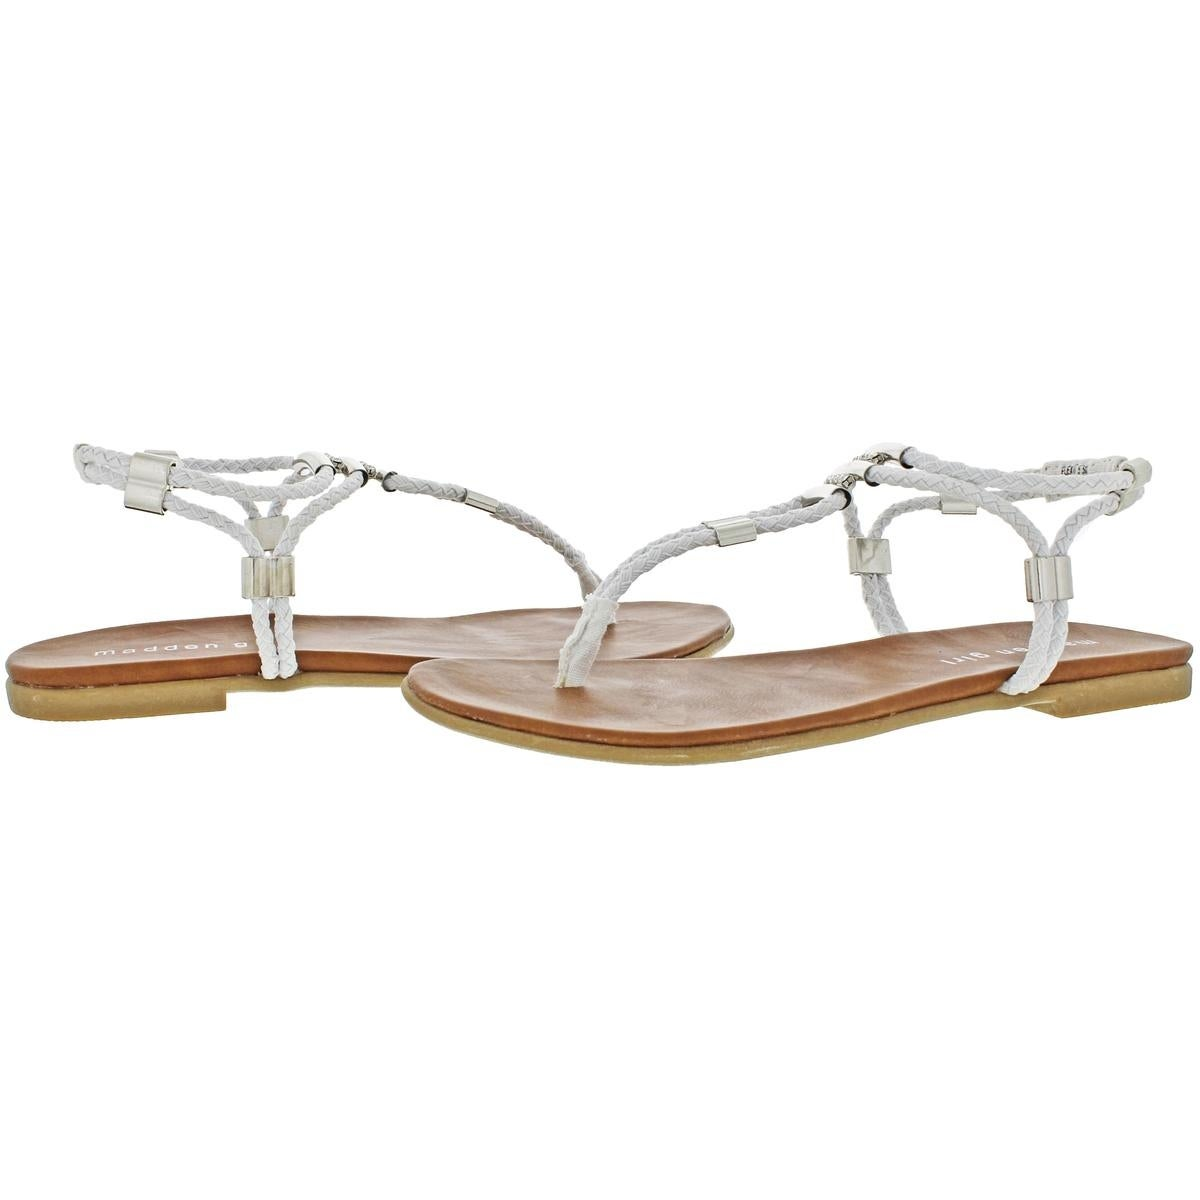 9e7b7cf27 Shop Madden Girl Womens Flexii Thong Sandals Braided Slingback - Free  Shipping On Orders Over  45 - Overstock - 22811723